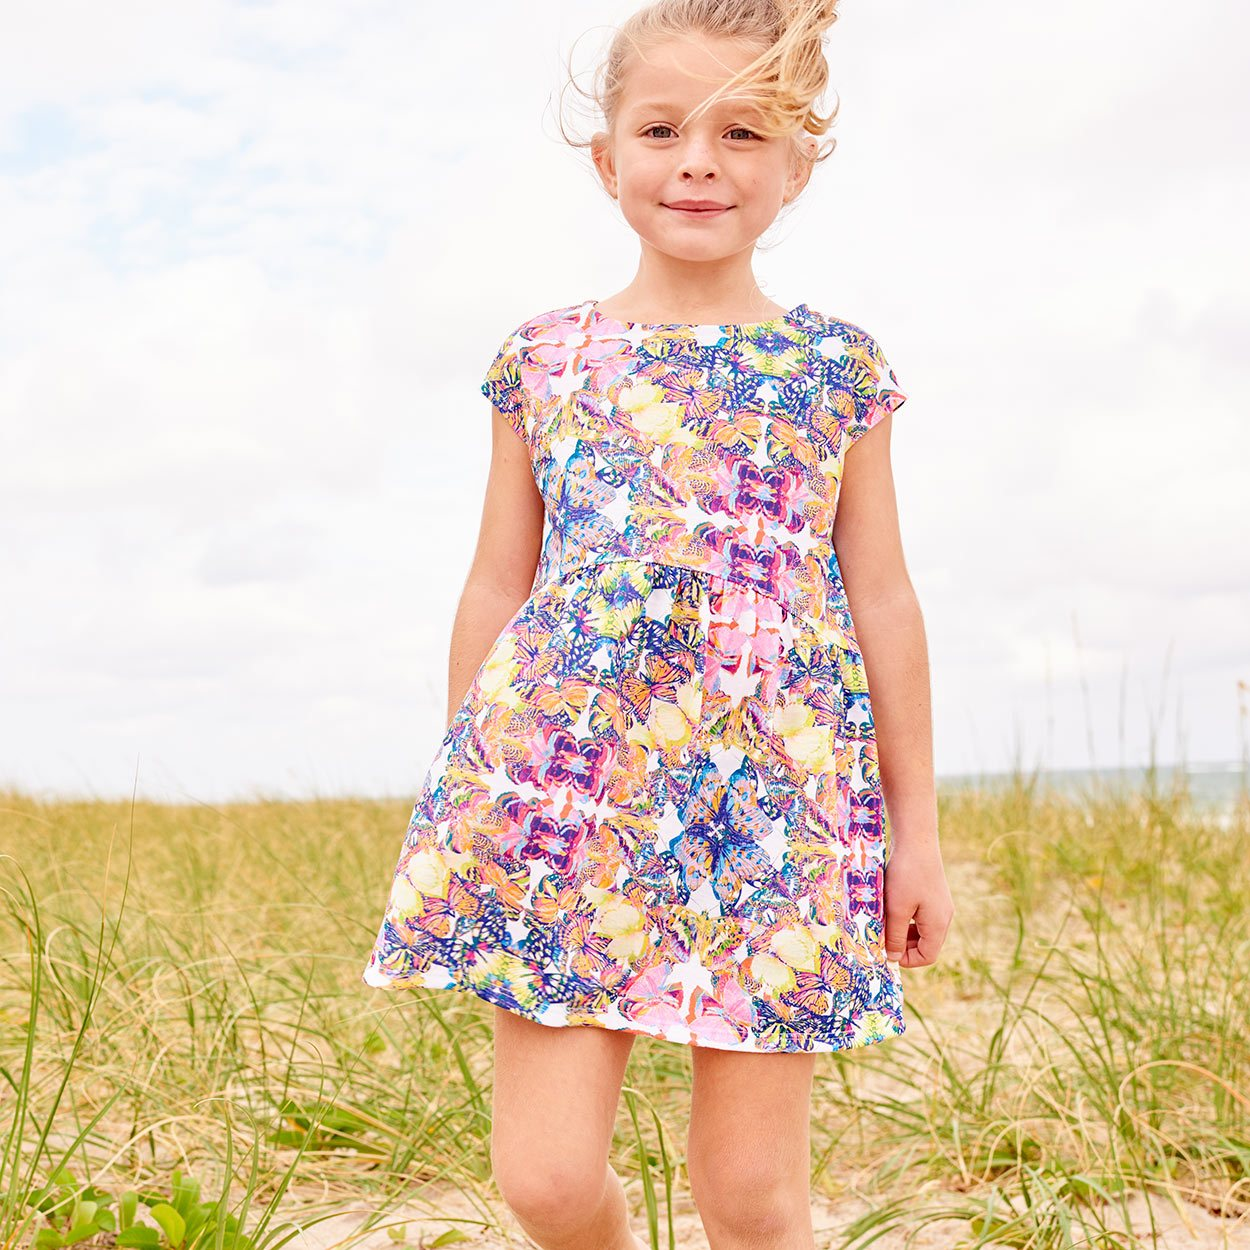 Kaleidoscope Dress Girls Size 2 12 Multicolor Opaline World Girl Standing On A Beach By Seagrass Sunpoplife